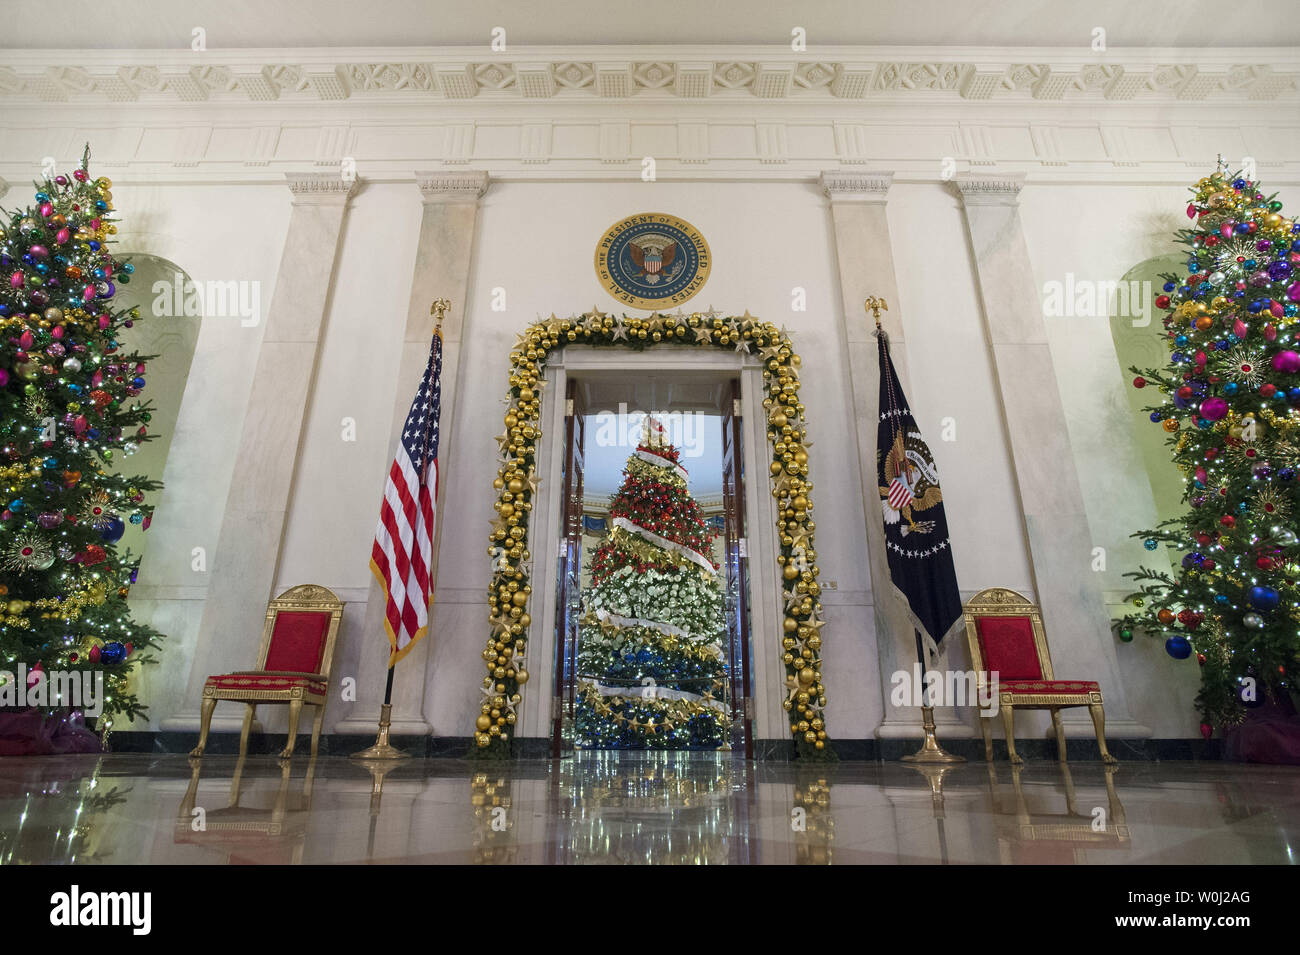 Decorations are seen in the Cross Hall during a holiday tour at the White House in Washington, D.C. on December 2, 2015. This year's team is 'A Timeless Tradition, and reflects long-held traditions cherished across America and commemorates extradorinaiy moments that help shaped the county. Photo by Kevin Dietsch/UPI. - Stock Image